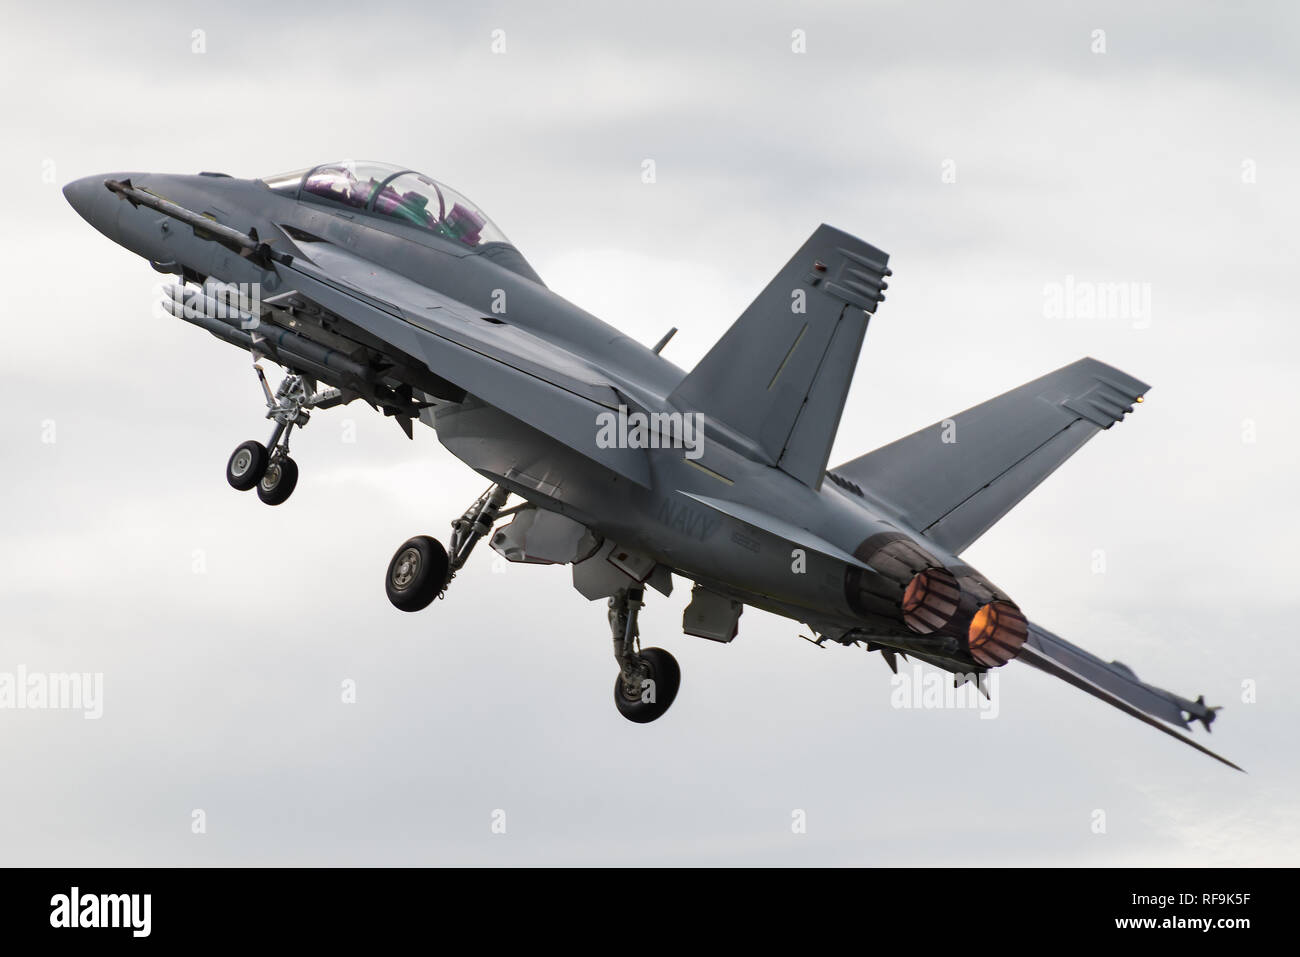 A Boeing F/A-18F Super Hornet multirole fighter jet of the United States Navy at the Royal International Air Tattoo 2016. - Stock Image